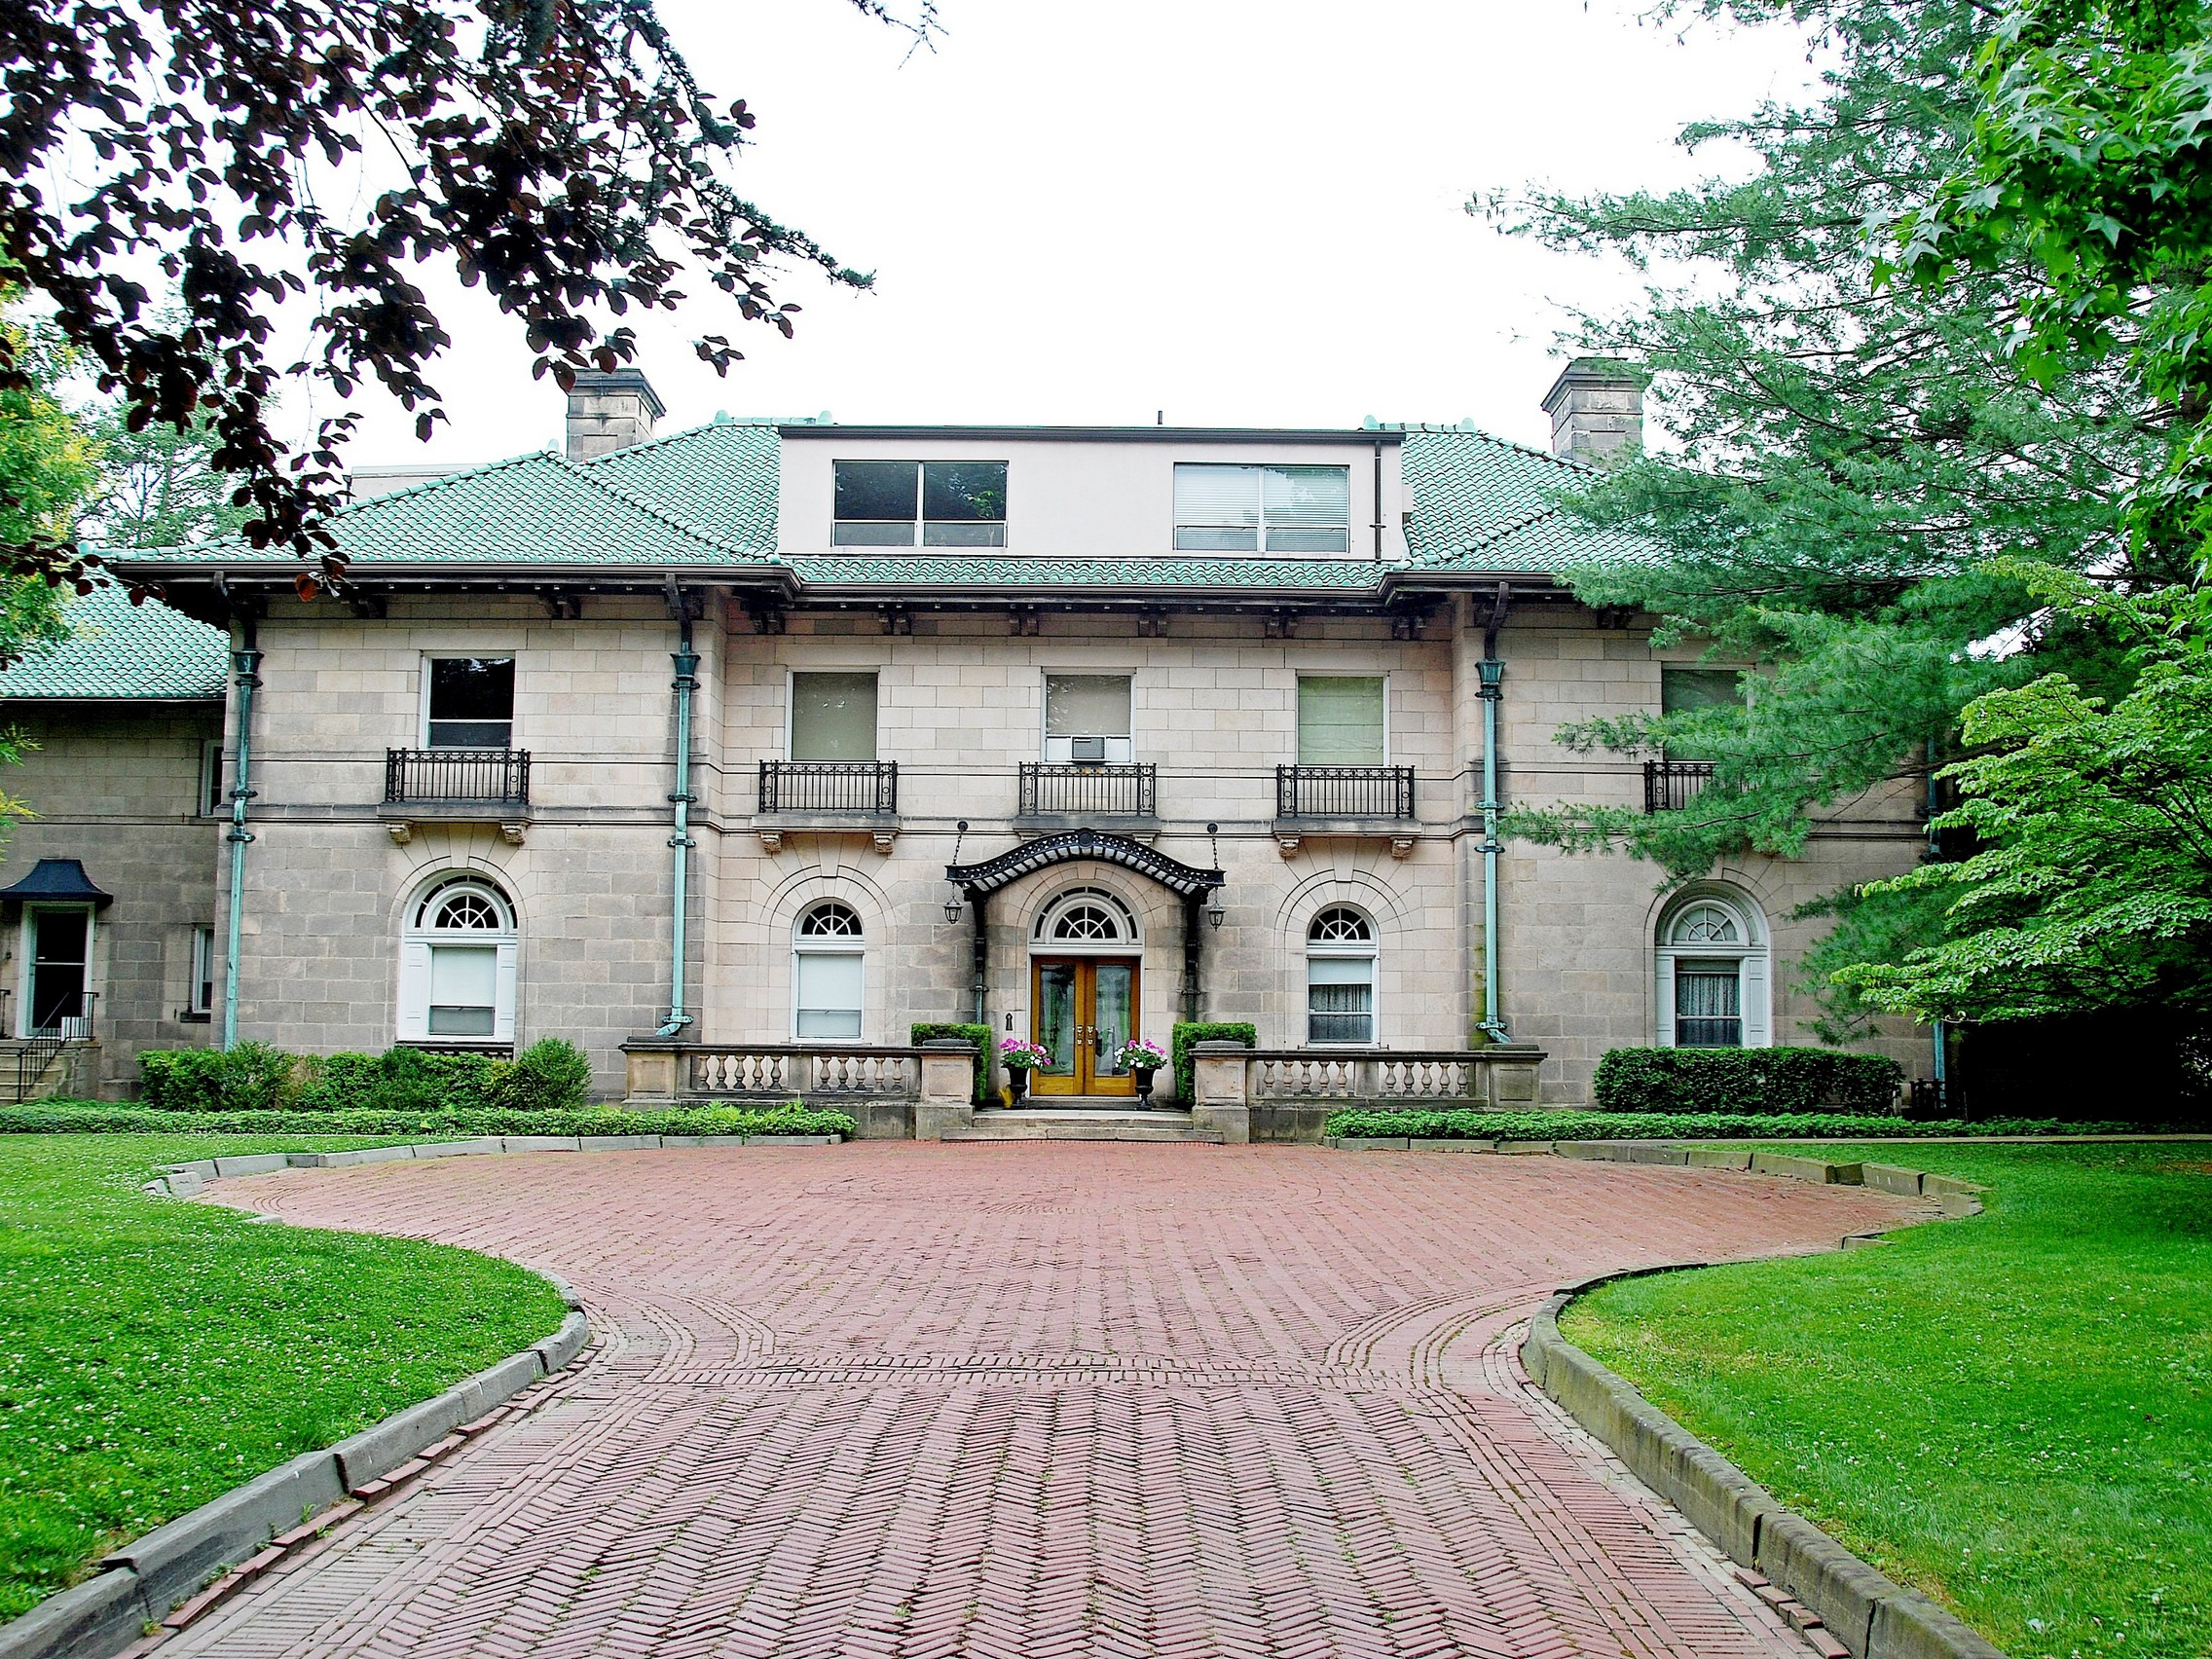 Condominium for Sale at Condo in Riverfront Mansion 531 North Broadway Upper Nyack, New York 10960 United States